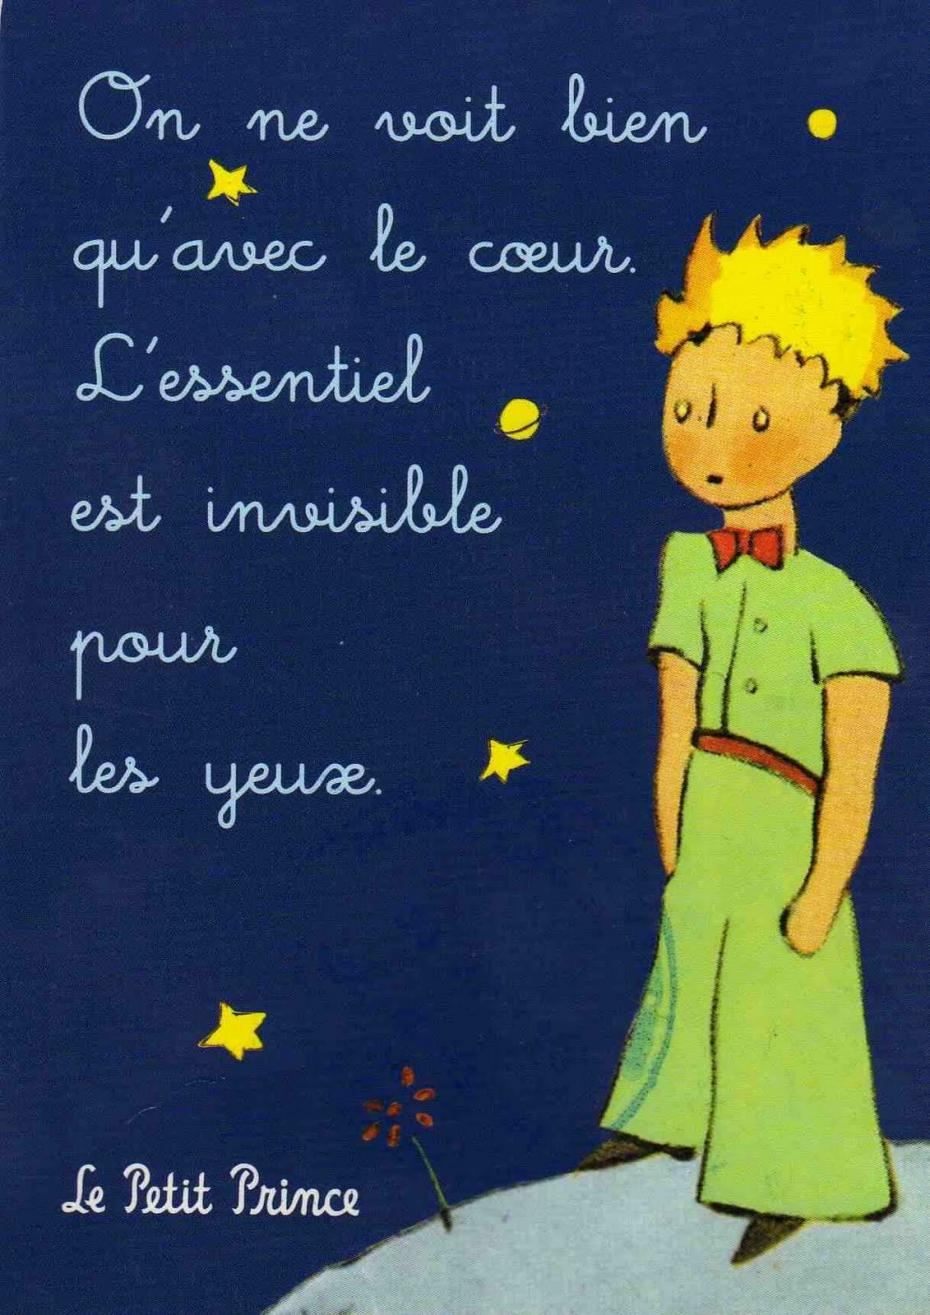 Le Petit Prince on Pinterest | The Little Prince, Prince and Wheat Fields